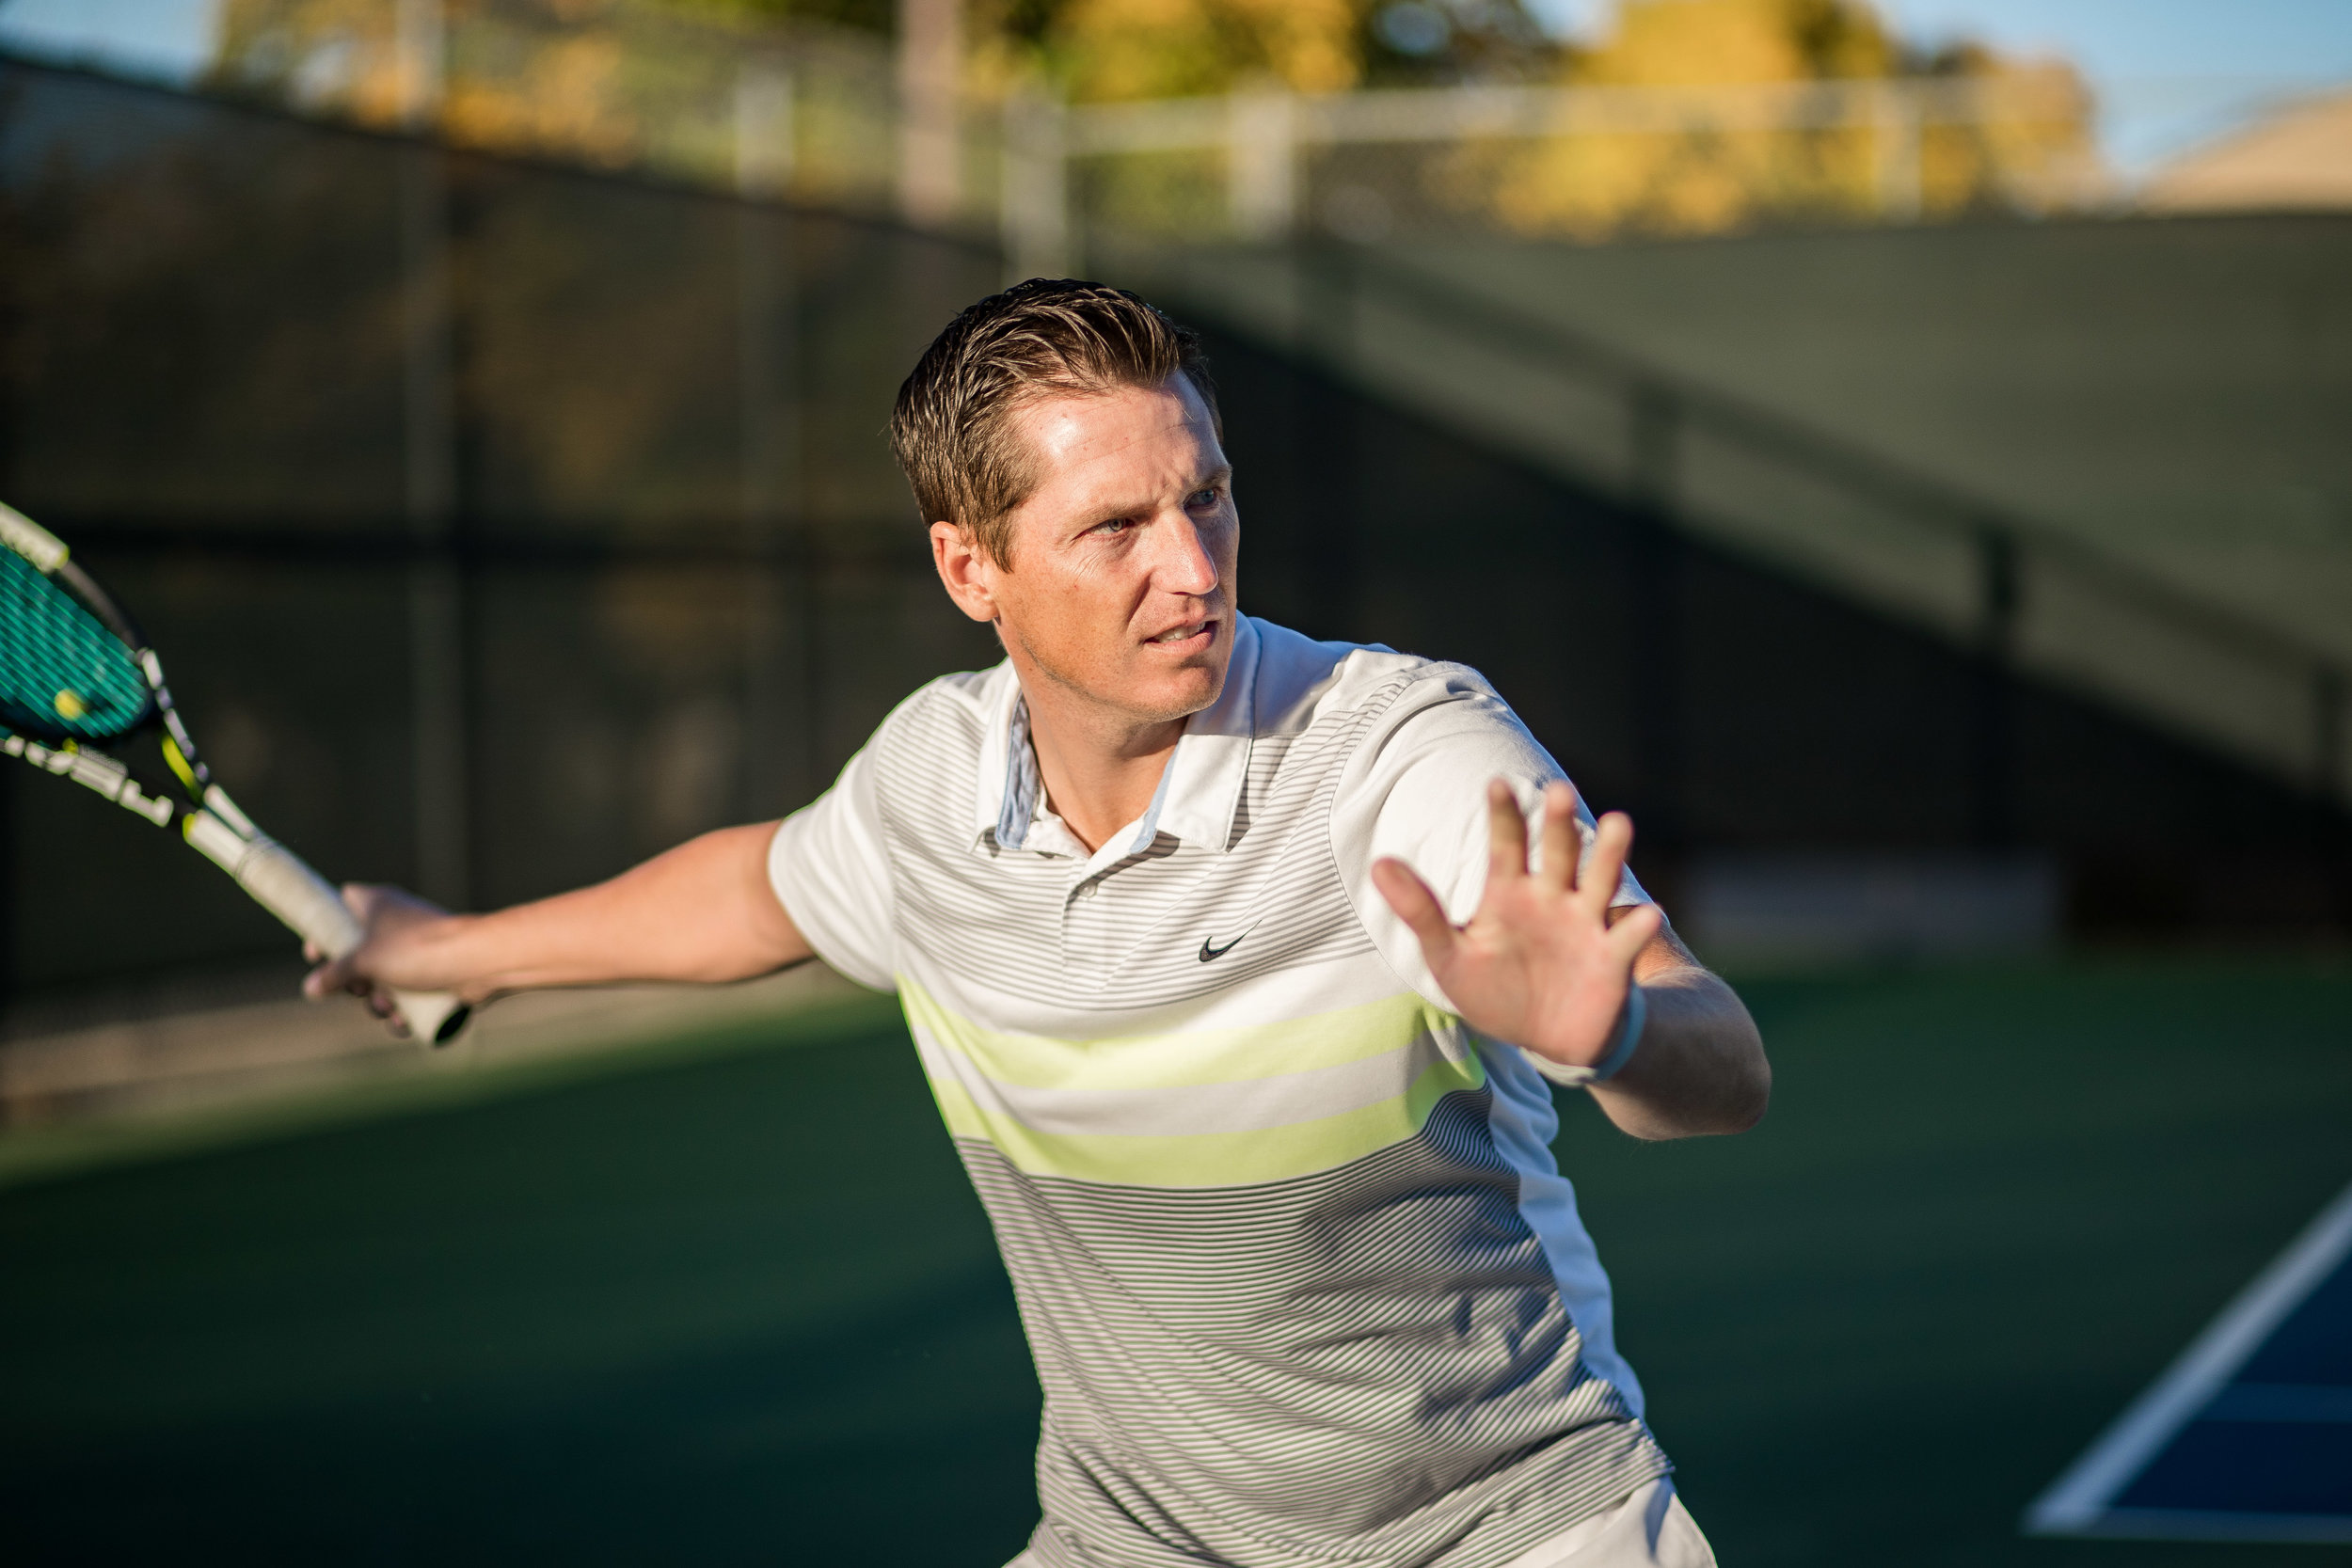 Tennis - Whether you're a novice or a pro, the BCC Tennis Club is the place to pick up your rackets and hit the court with private lessons, weekly play for all skill levels, local tournaments, a thriving juniors program and more!